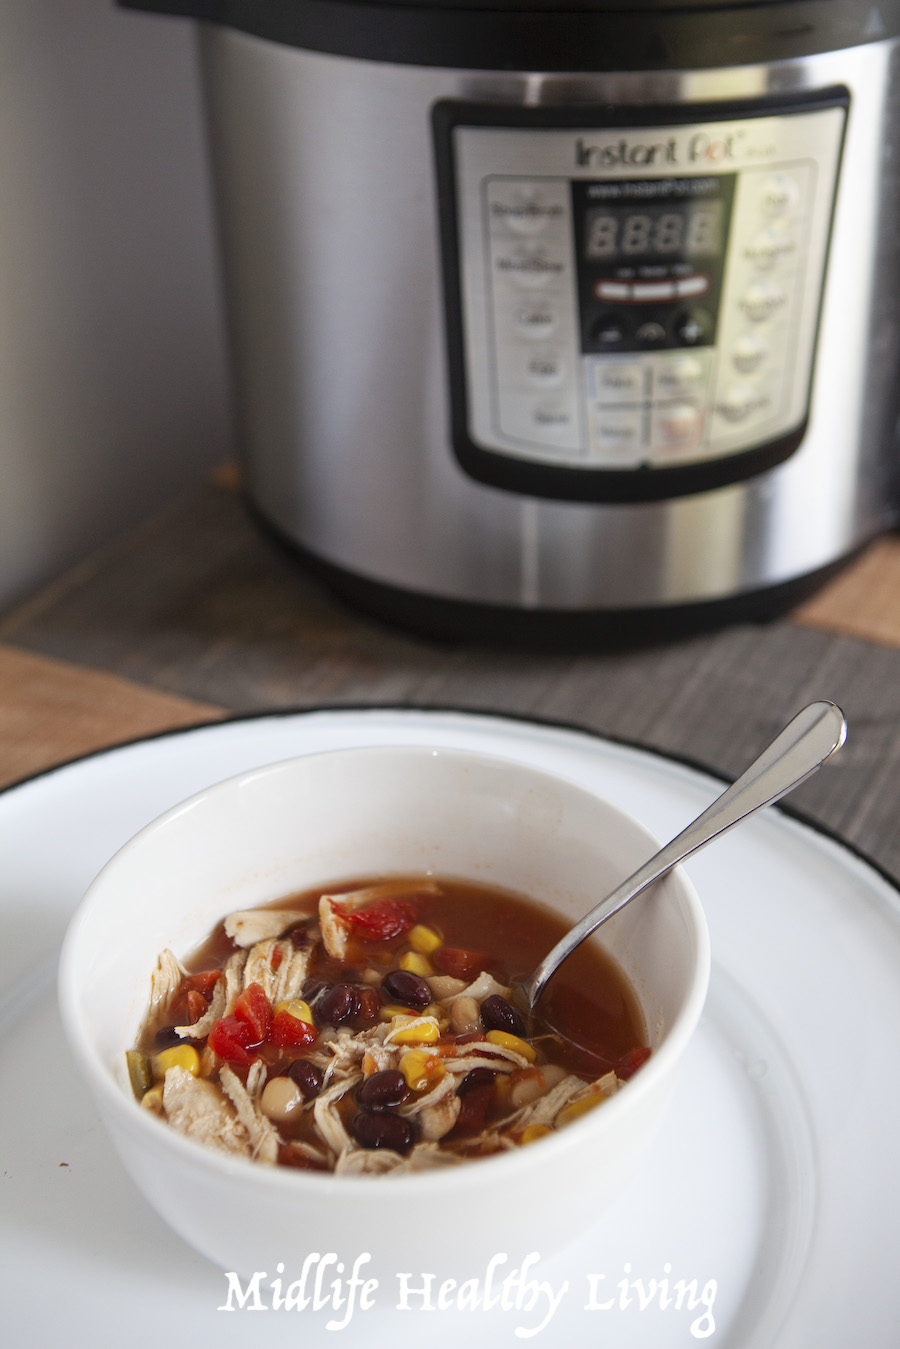 A finished bowl of the weight watchers taco soup ready to eat in front of the pressure cooker.